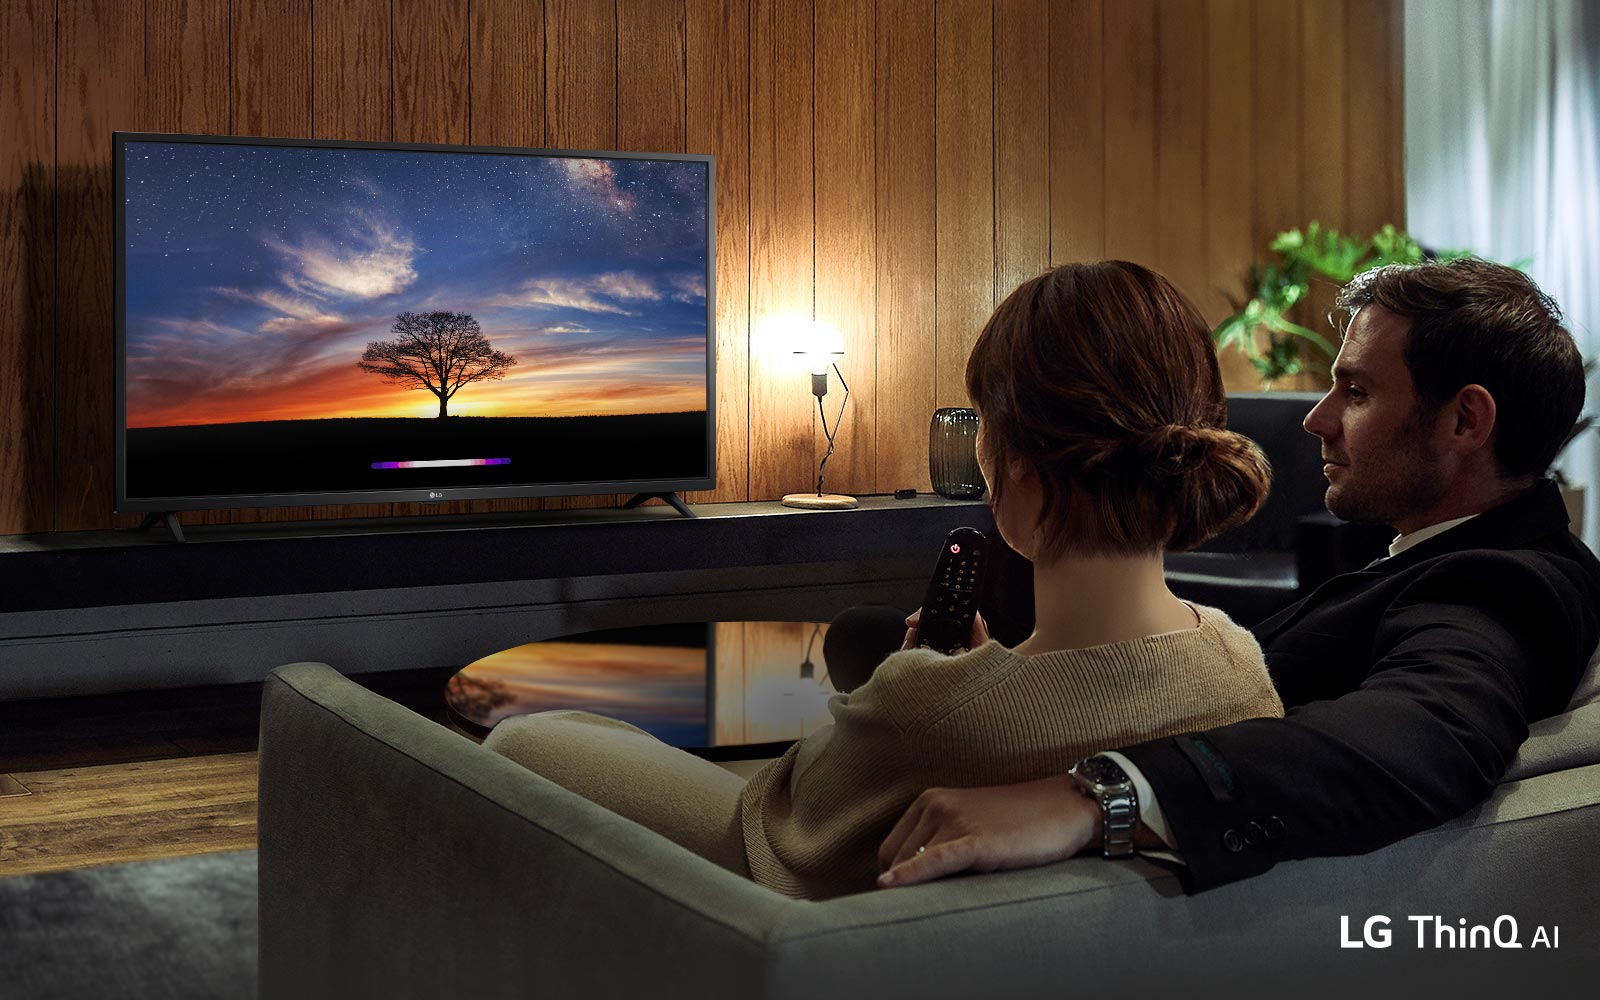 LG ThinQ AI Smart TV